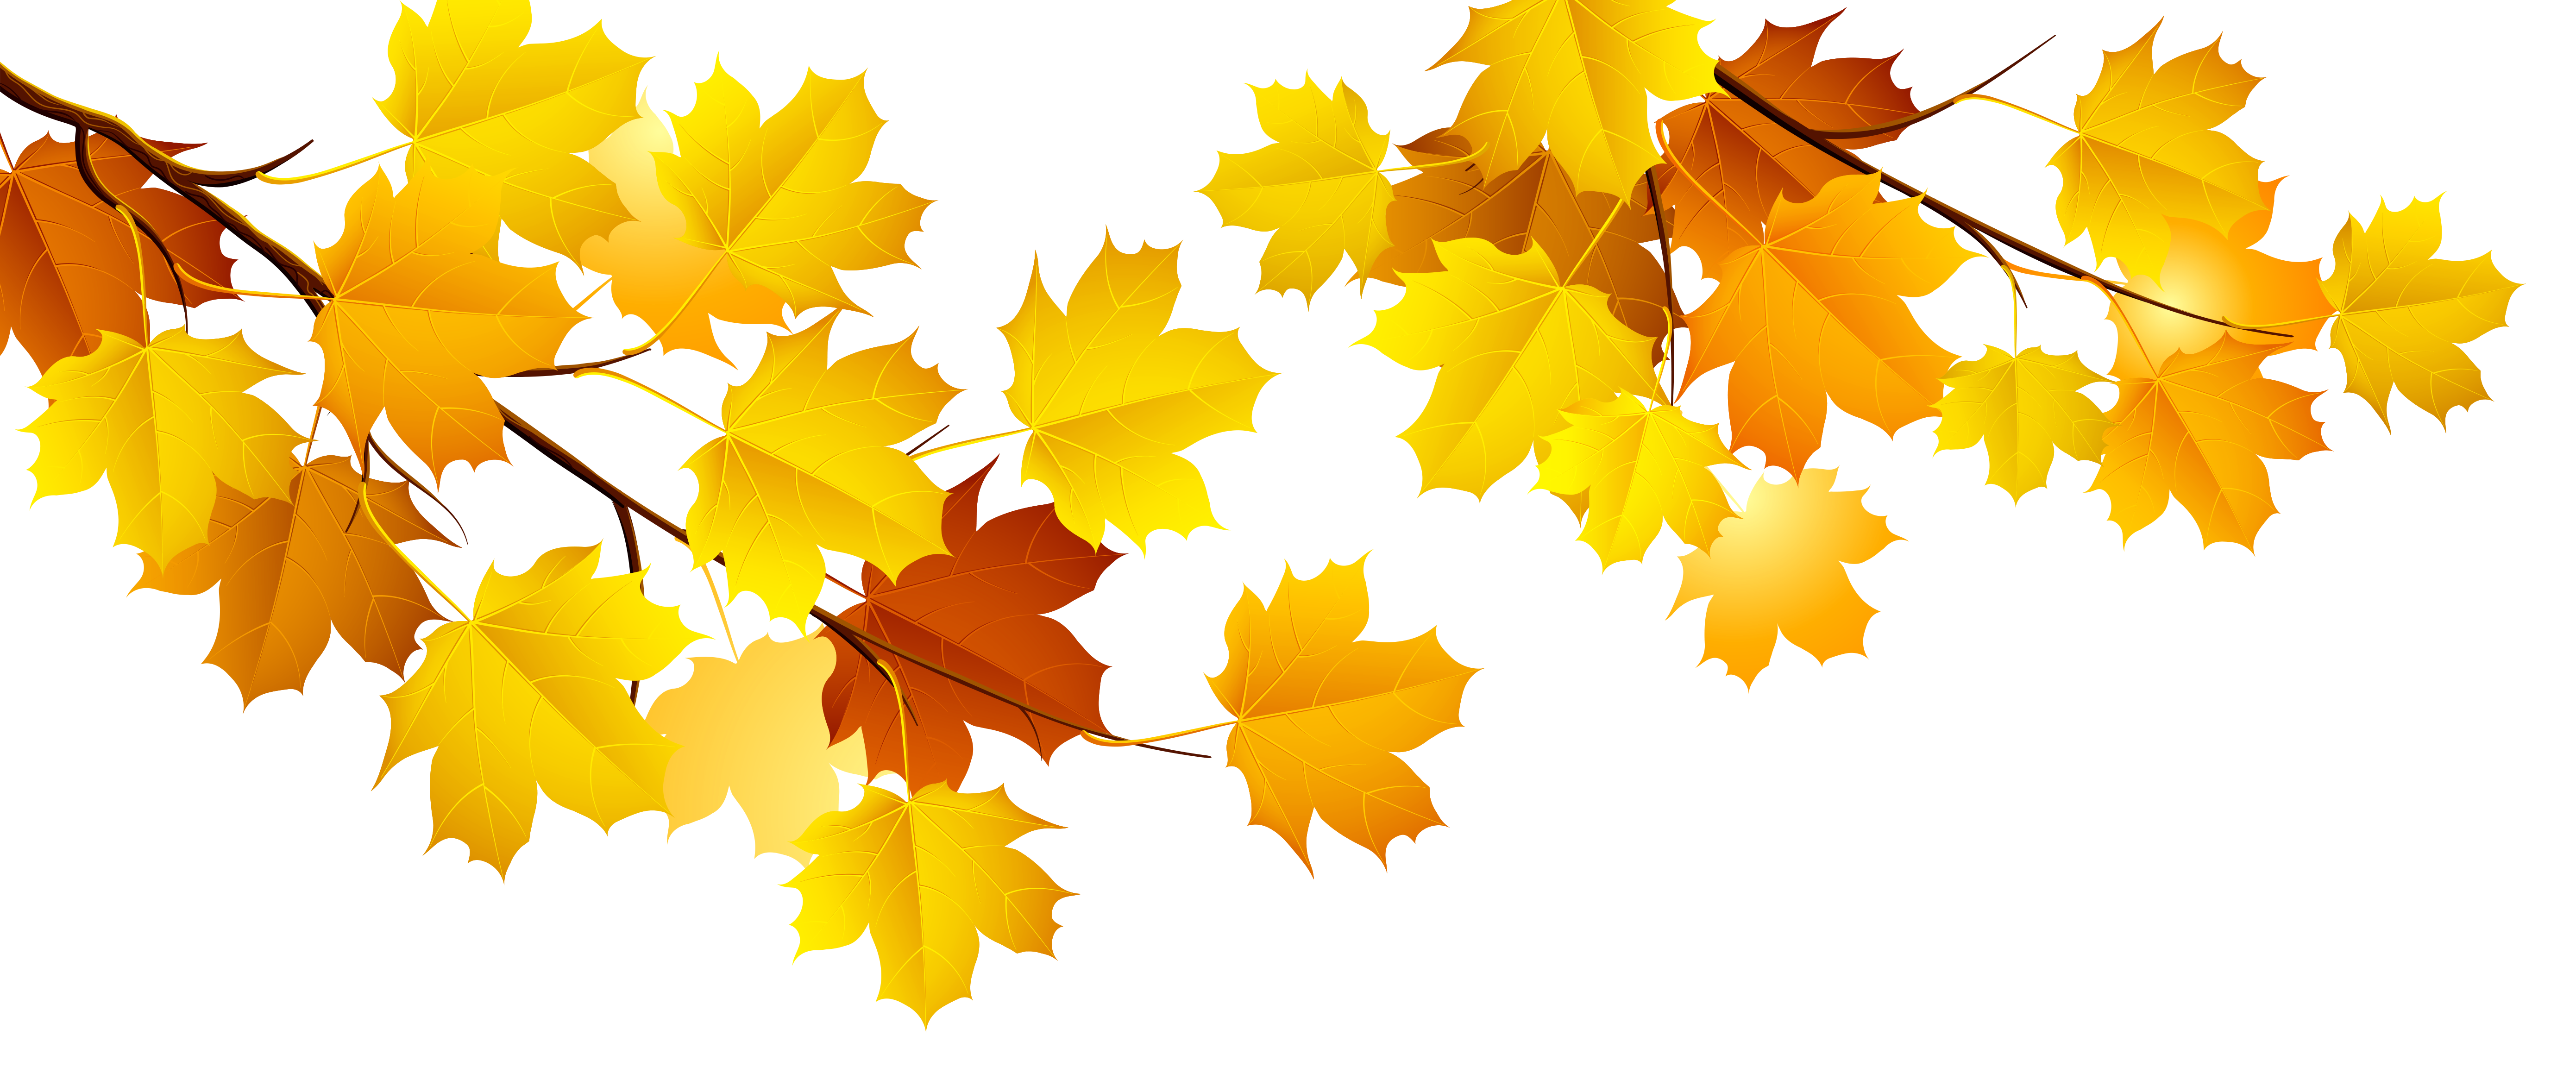 Branch png yopriceville high. Clipart gallery autumn